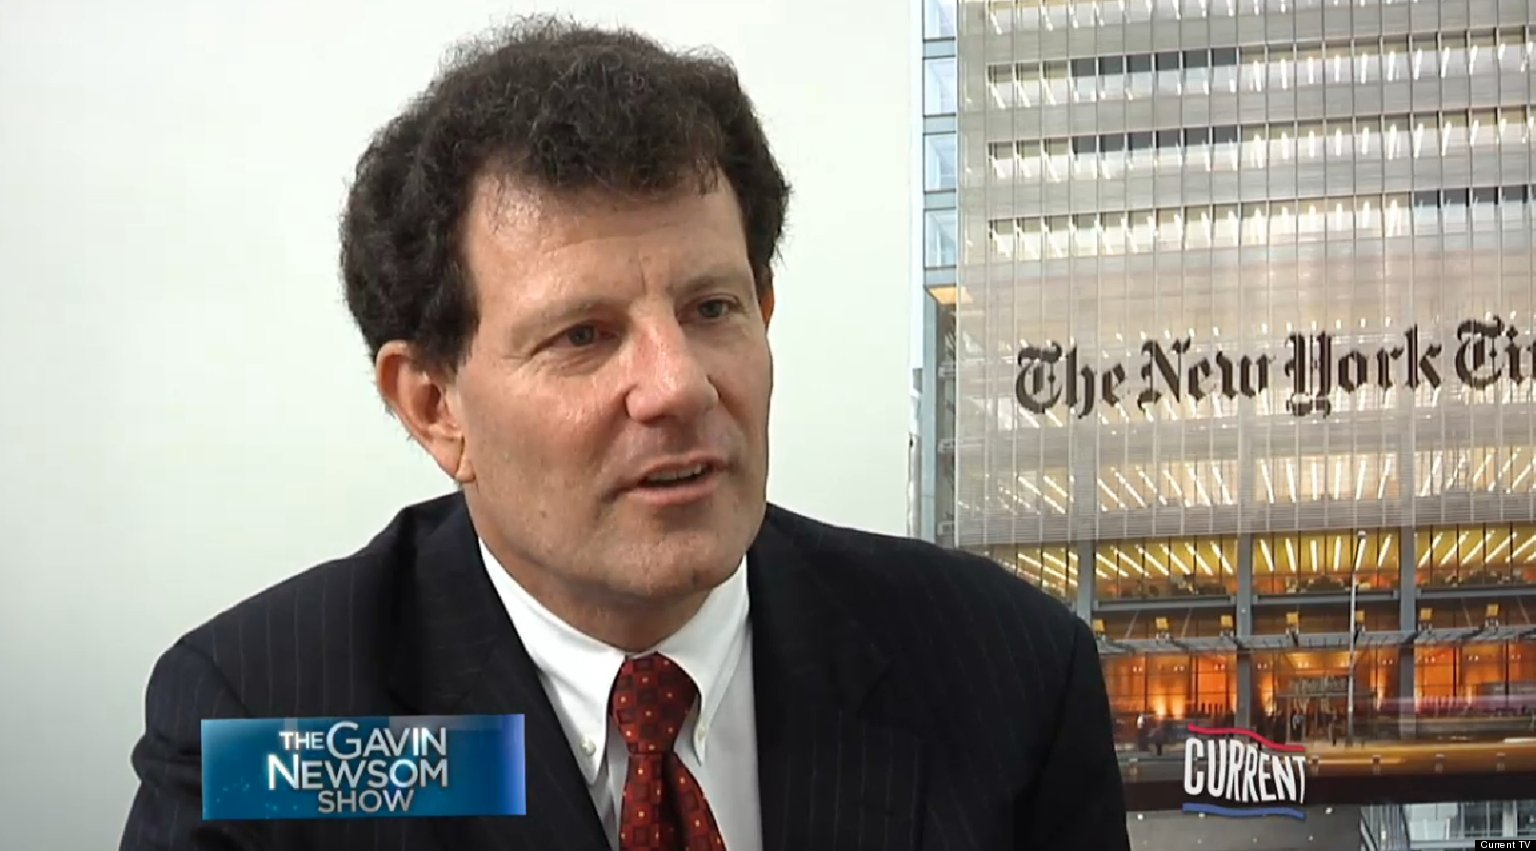 Nicholas Kristof On Obama: 'I Don't Think He Ever Came Up With A Good Bumper Sticker' (VIDEO) - o-NICHOLAS-KRISTOF-facebook